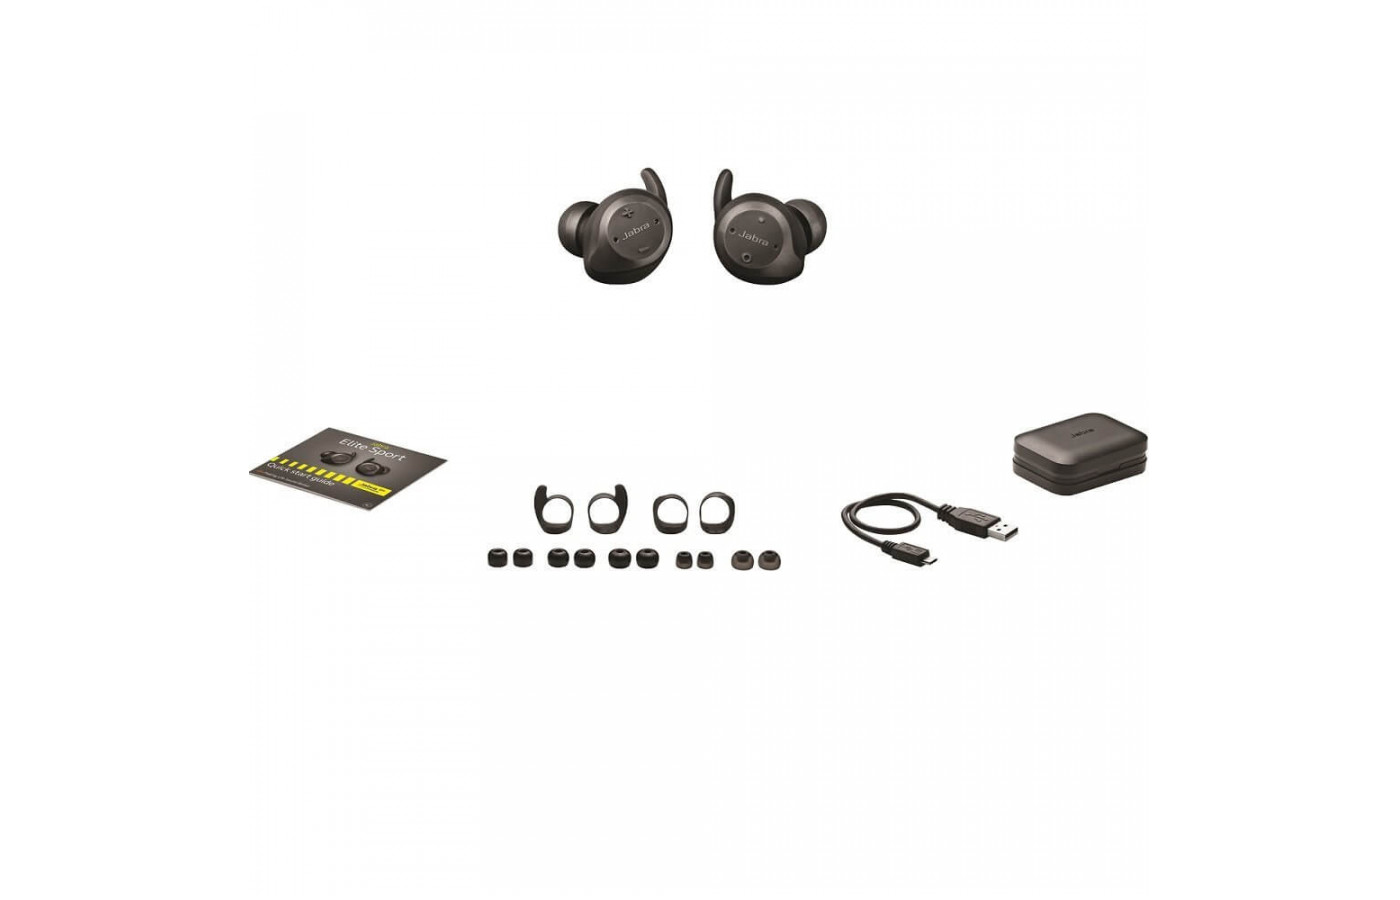 All of the accessories included with the Jabra Elite Sport.